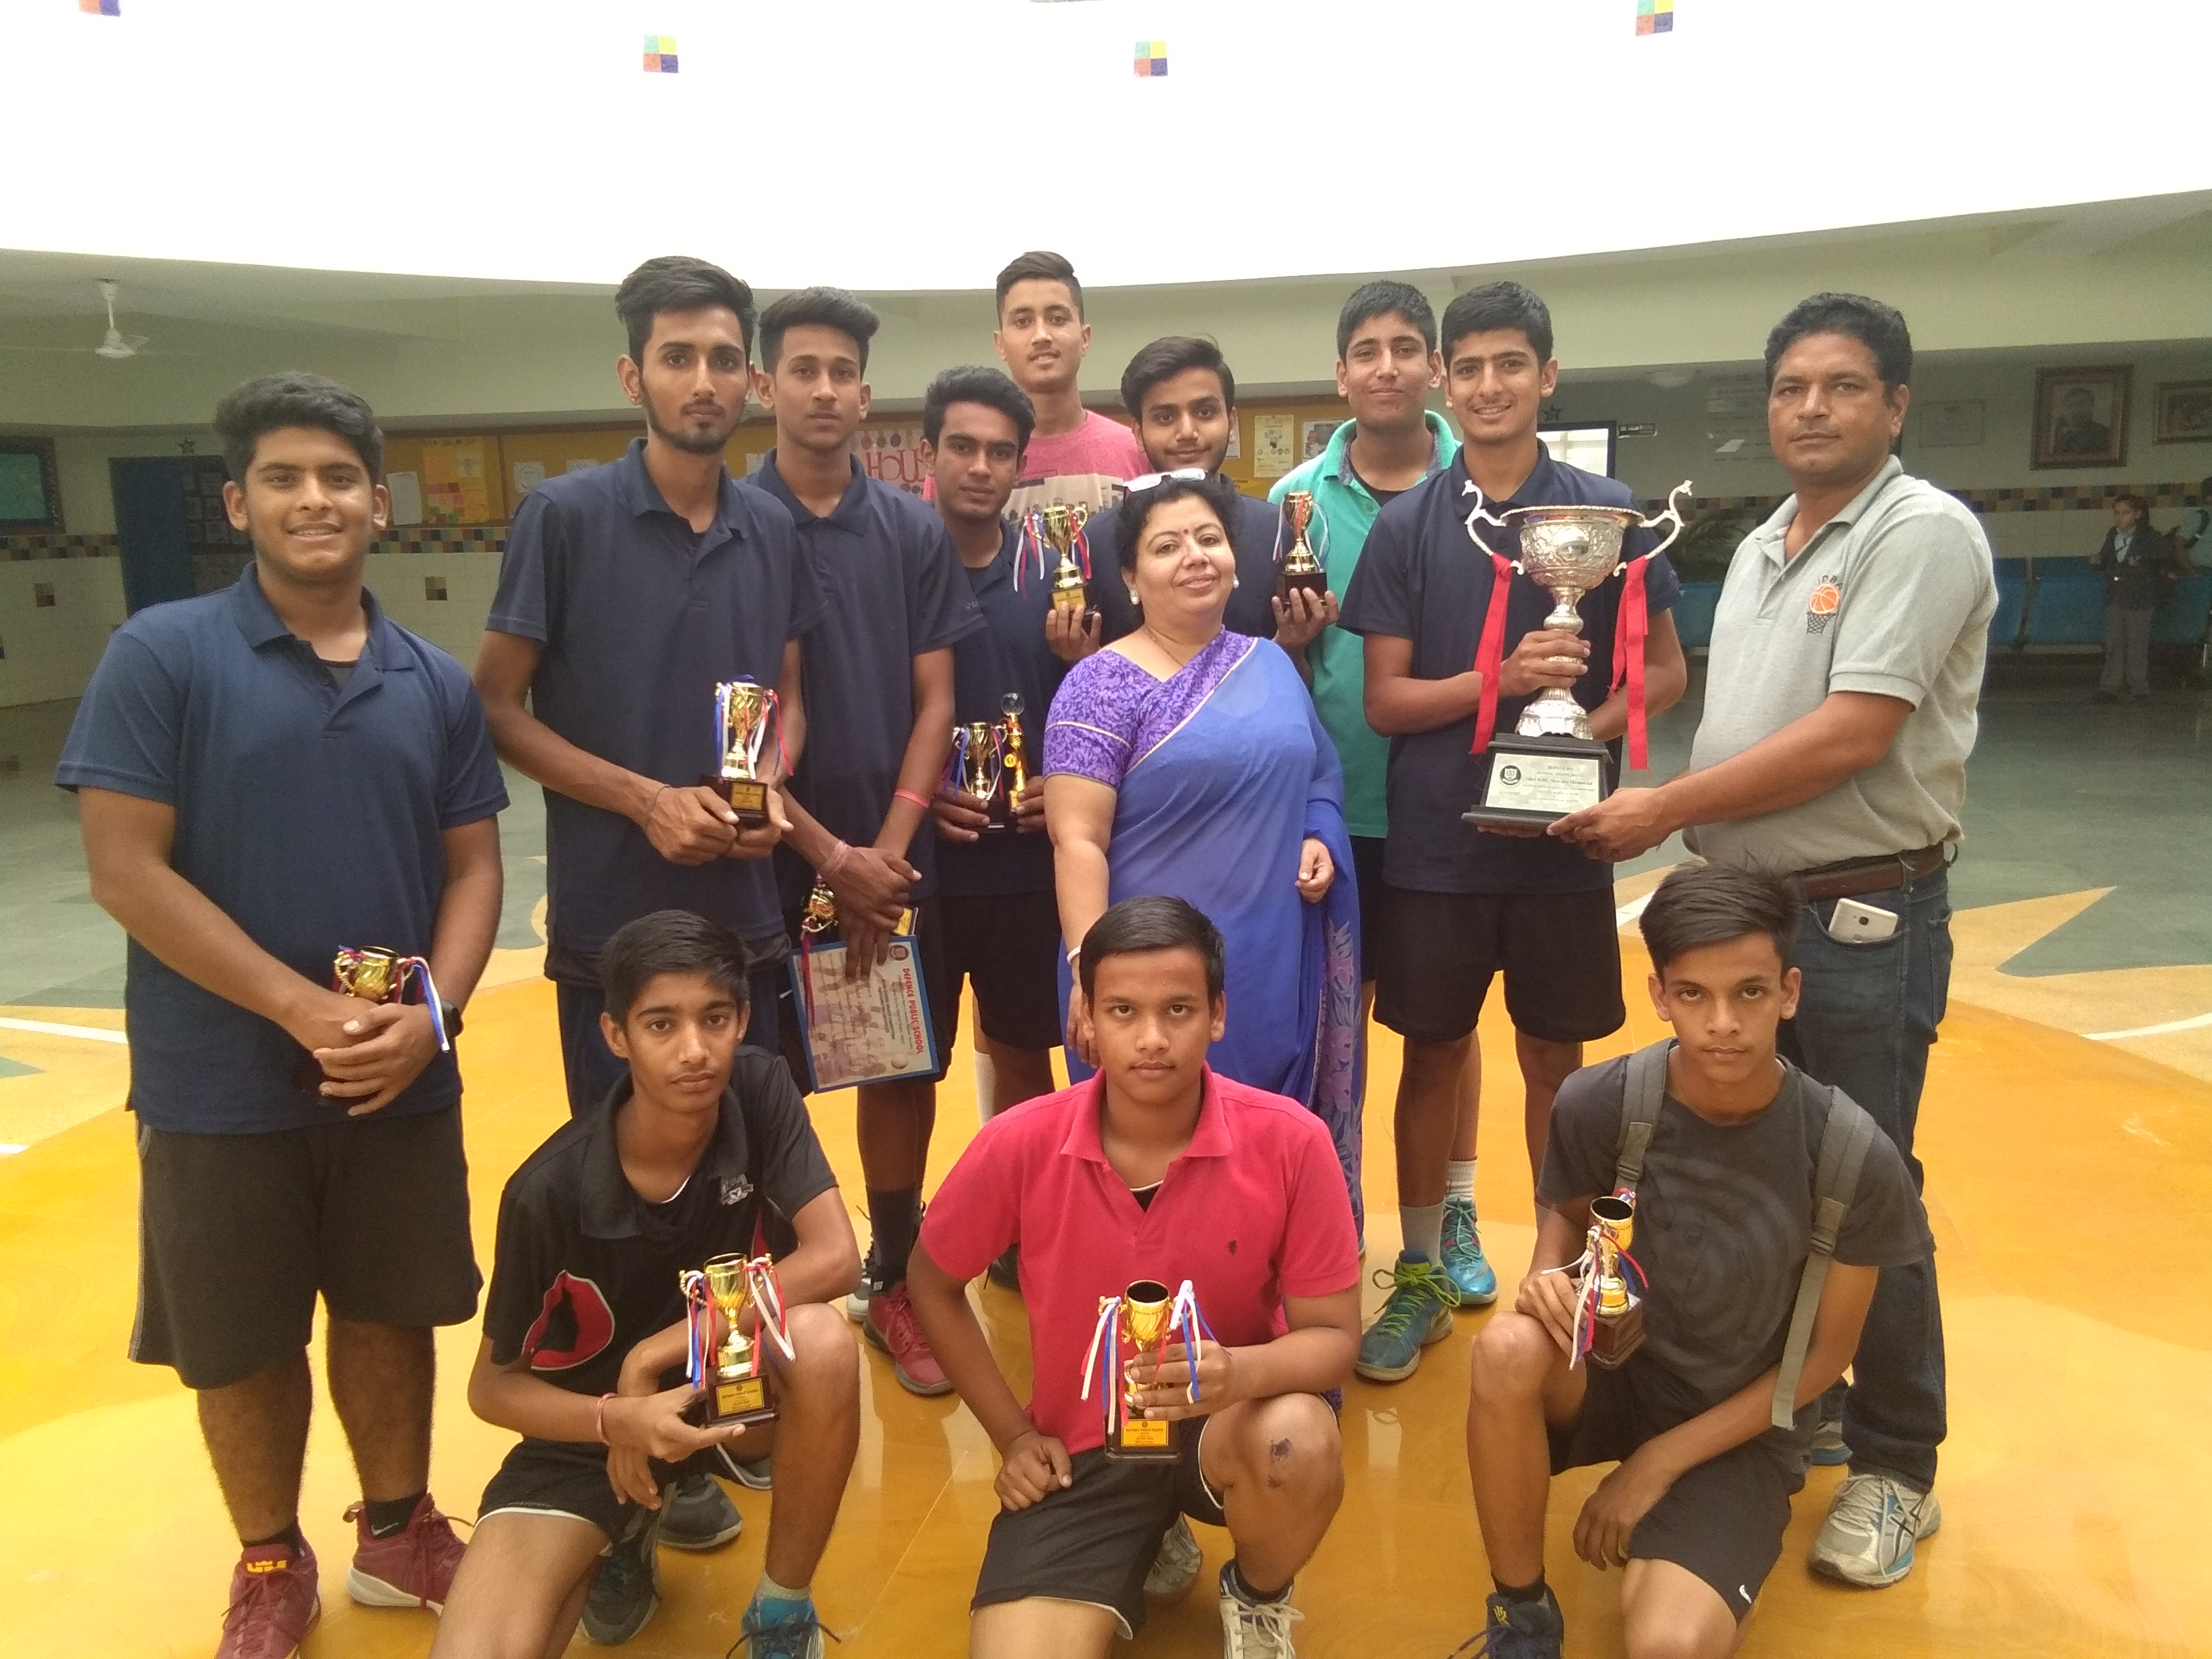 Sanskar School wins 'Abhyas Basketball Tournament' and declared Runners Up in 'V Mayur Basketball Tournament'